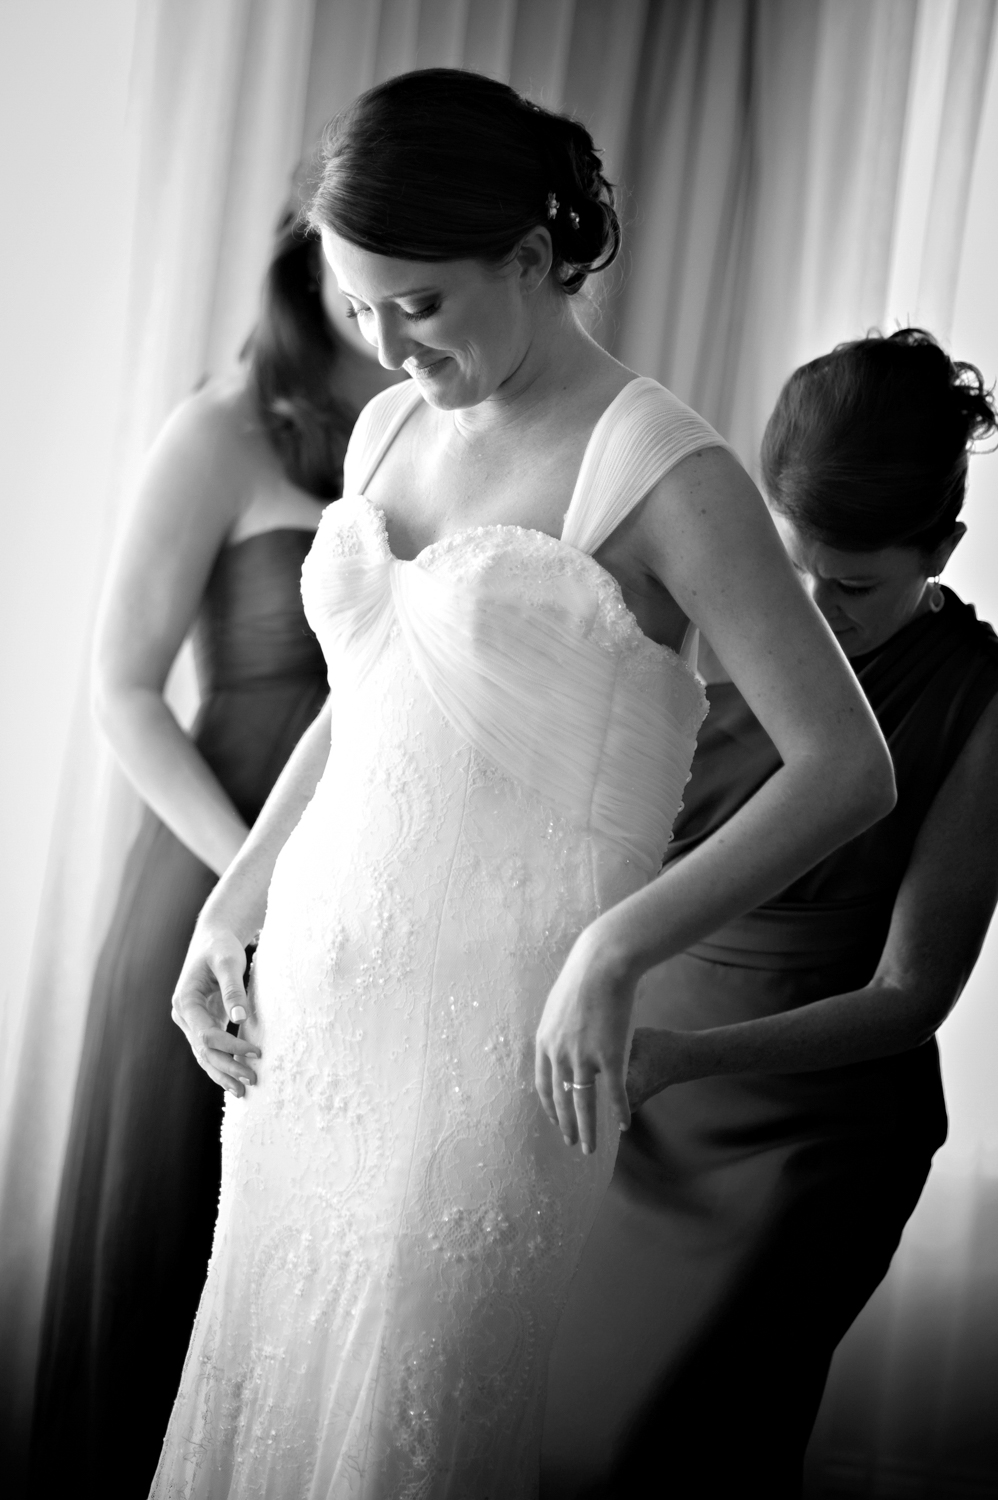 PaigeEden_Weddings_Broadmoor_004.jpg